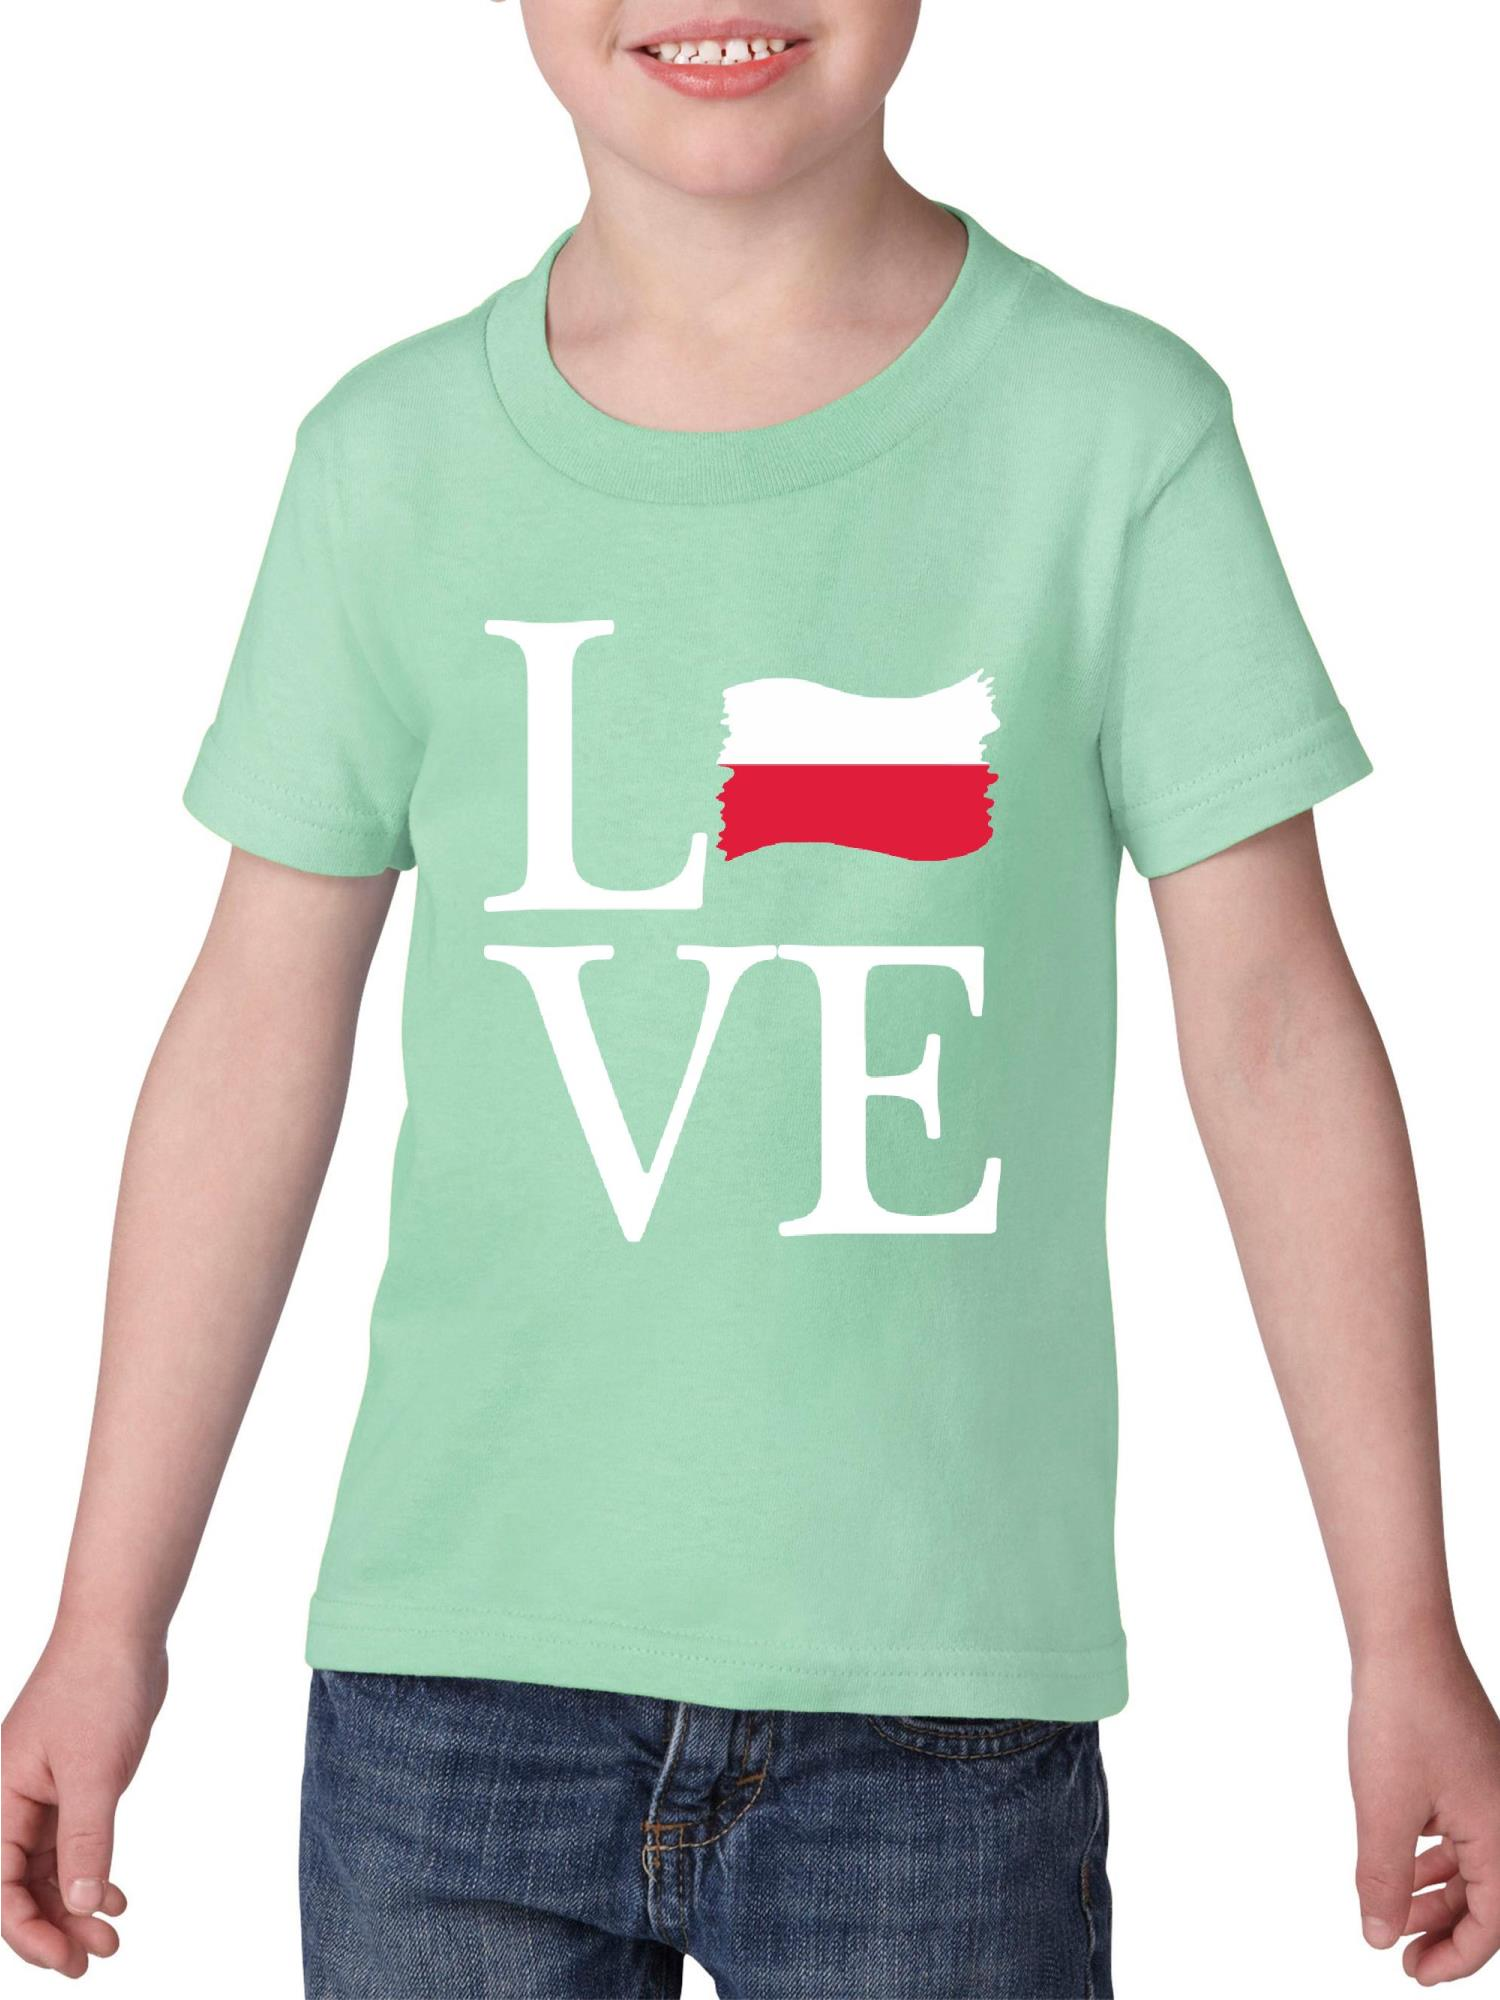 Love Poland Heavy Cotton Toddler Kids T-Shirt Tee Clothing